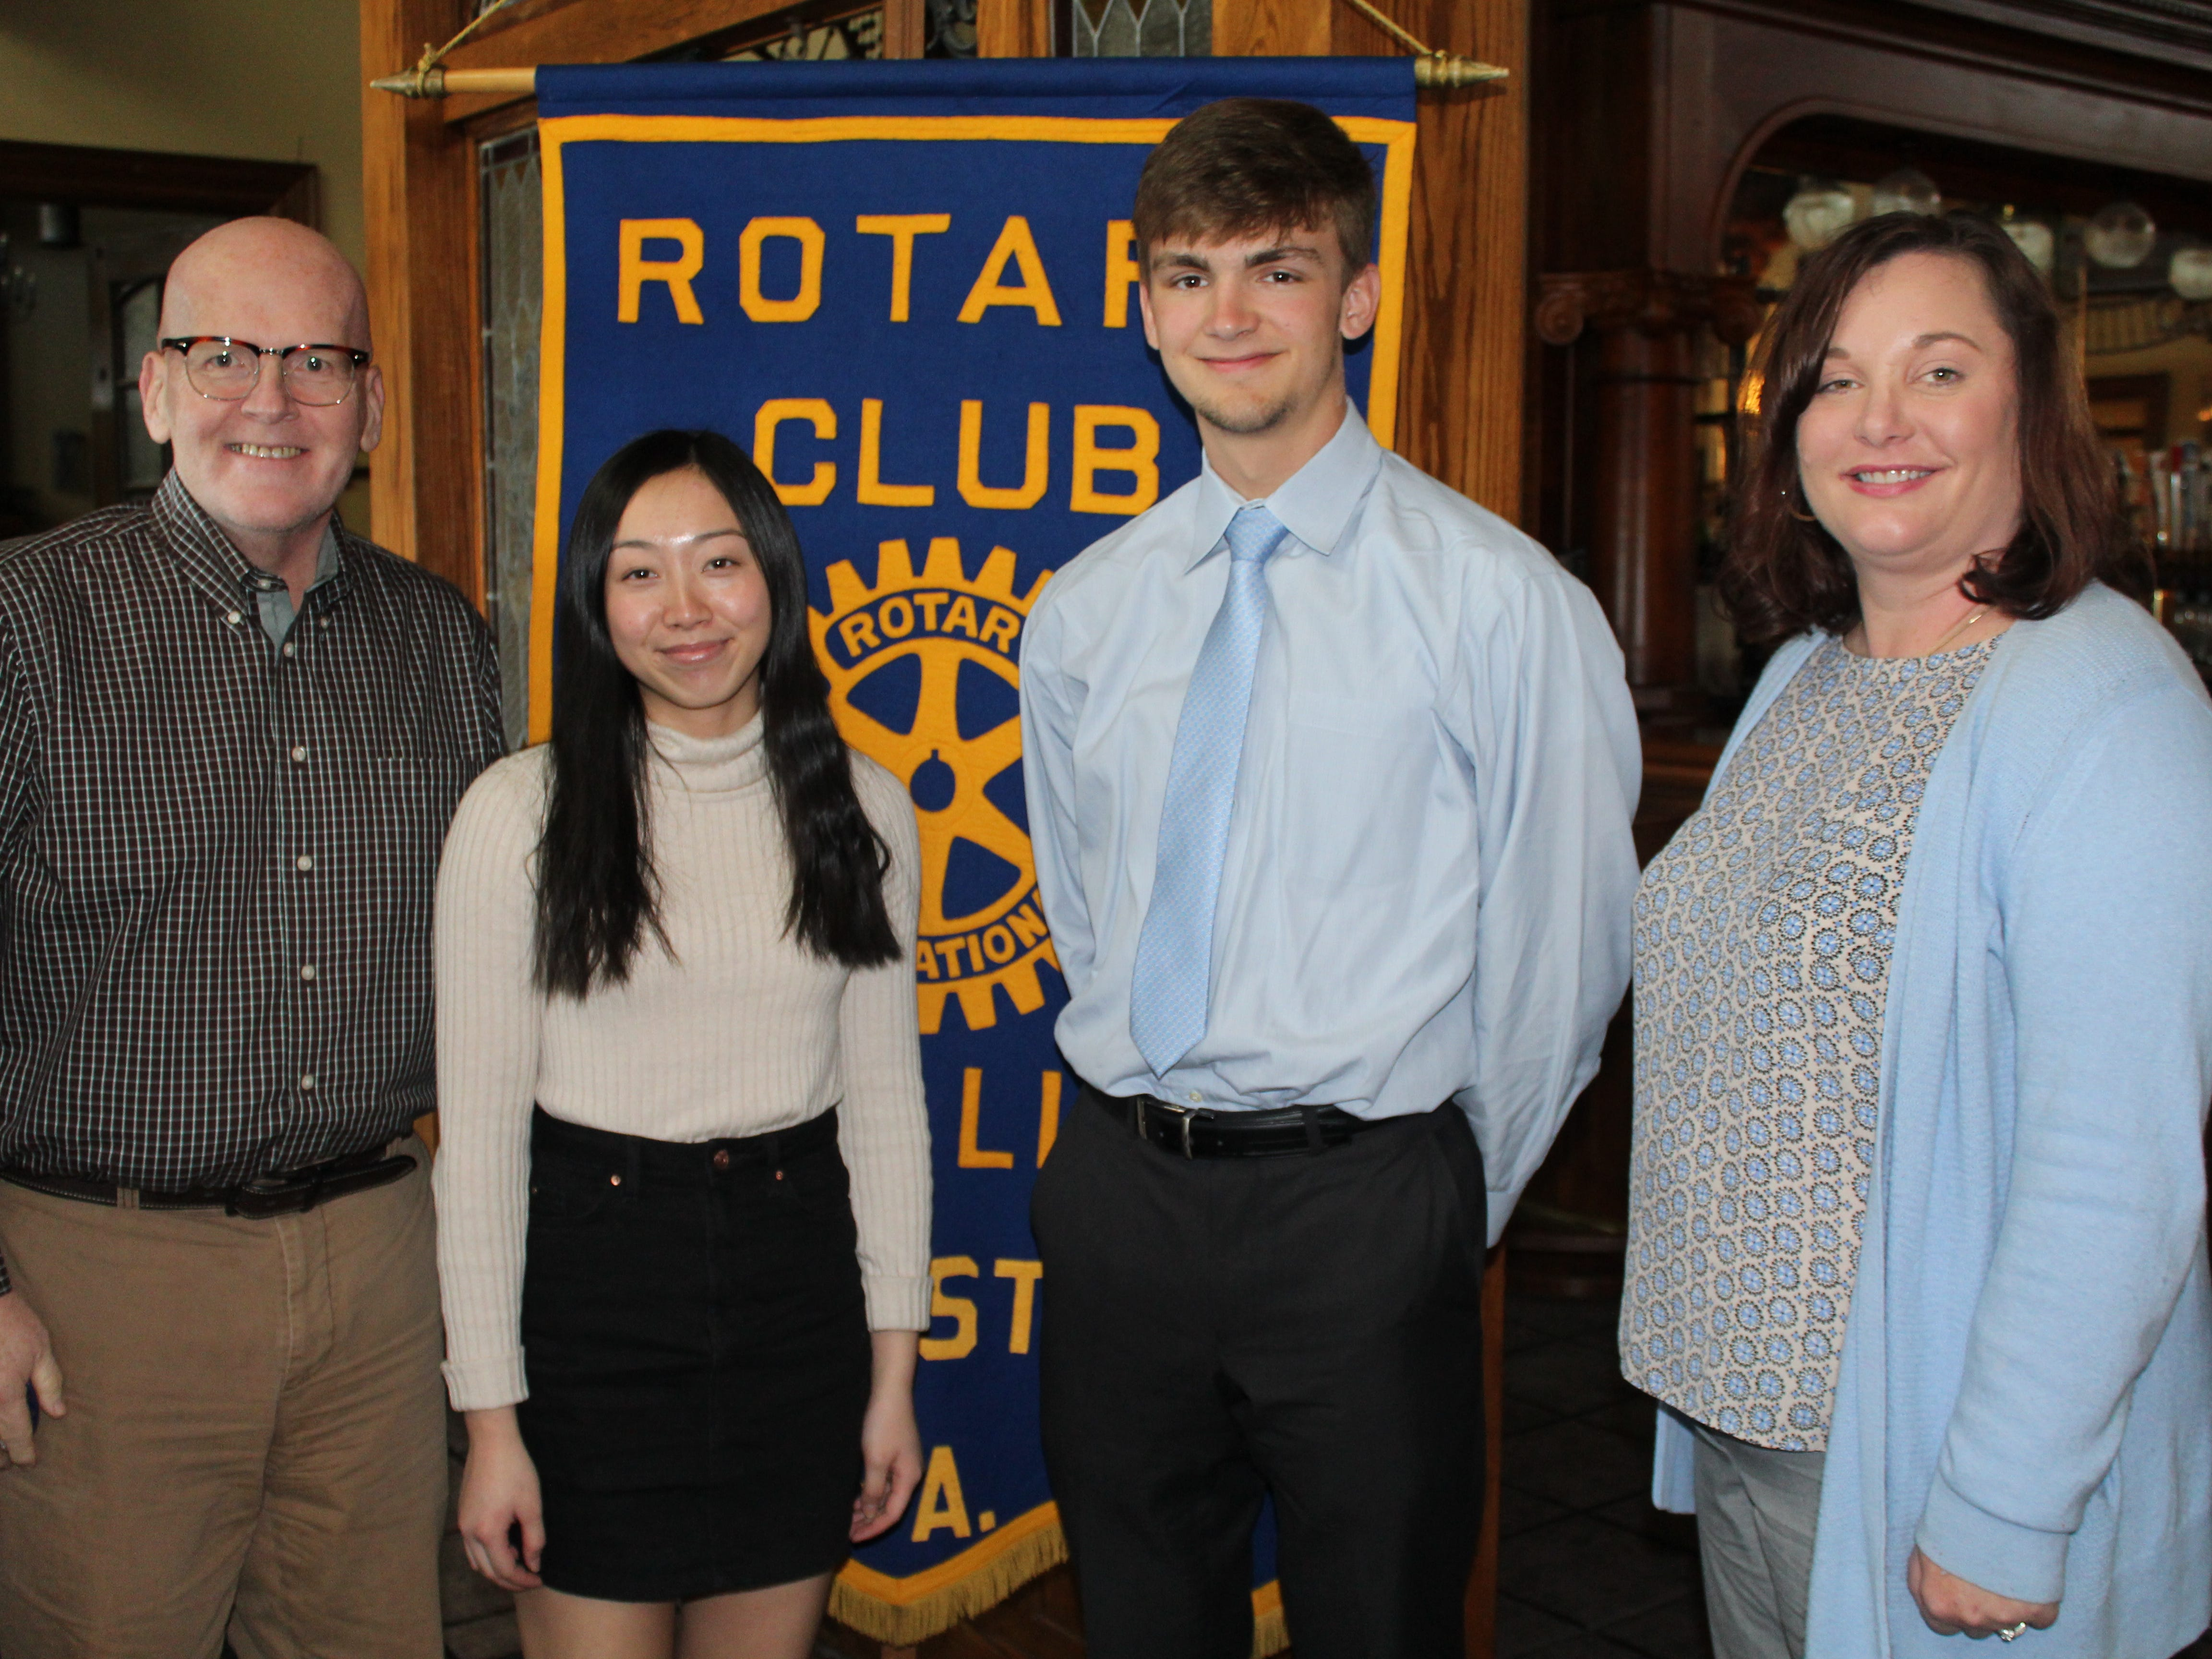 The Rotary Club of Red Lion - Dallastown recognized four students as February Students of the Month at their February 21st meeting. Club members George Flickinger, left, and Carrie Wilburn, right, pose with Dallastown students Liana Hoffman and Jacob Horning. submitted